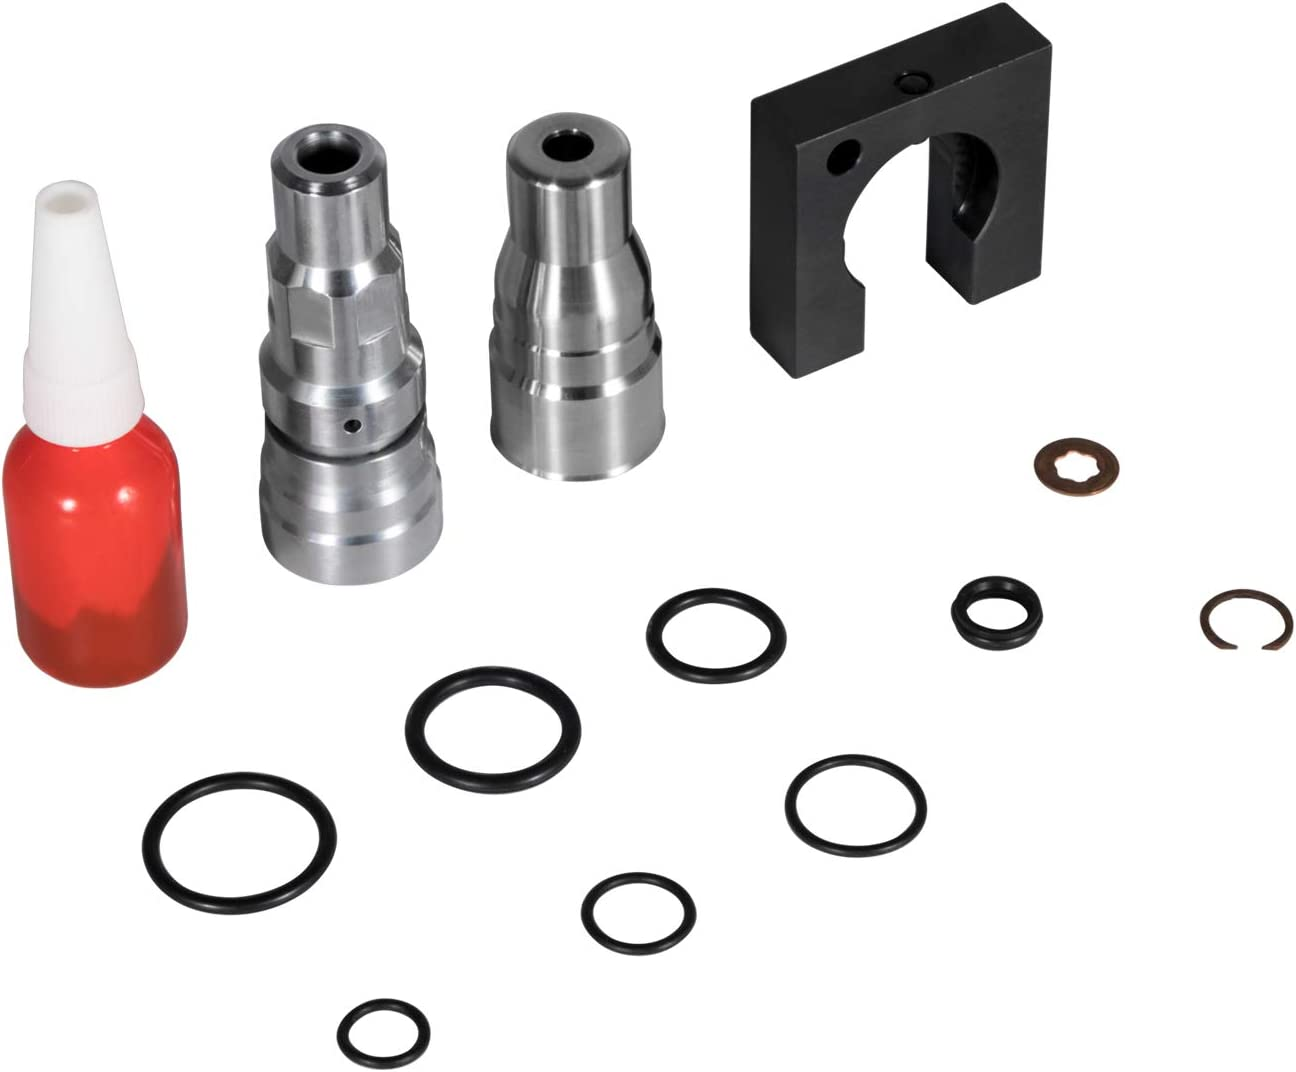 6.0L Powerstroke Engine Head Repair Kit and Fuel Injector Sleeve//Cup Puller and Installer Tool Set for All 2003-2010 6.0L /& 6.4L Ford Powerstroke Engines